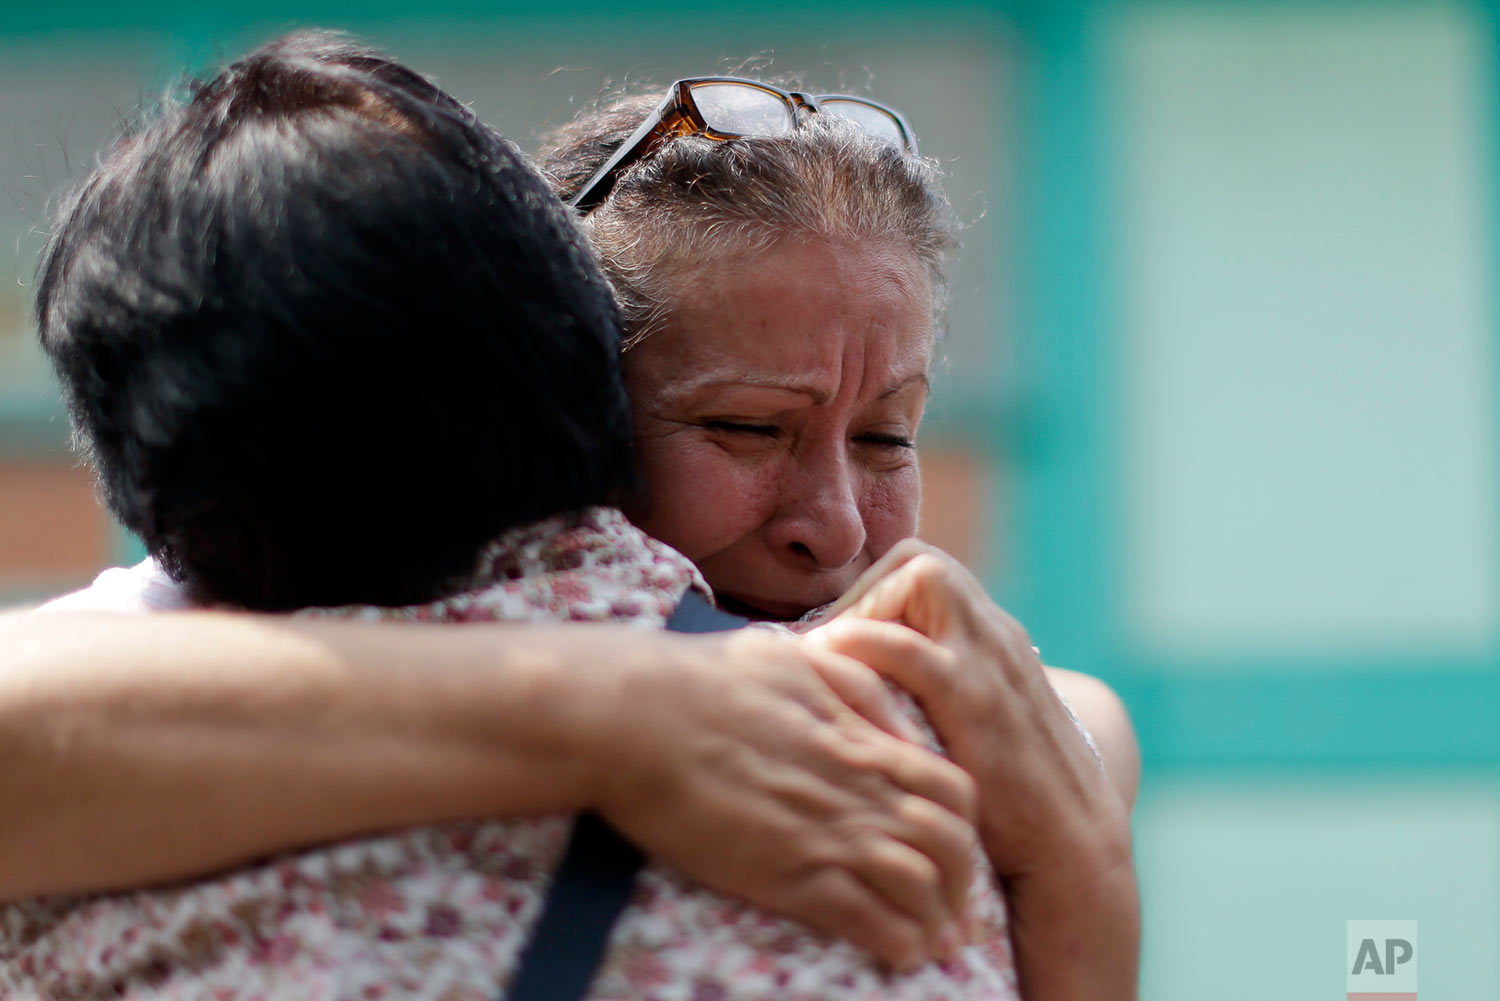 Maria Susana Fernandez Lopez embraces a neighbor outside the Francisco Kino school, which was turned into a temporary shelter for residents evacuated from a large apartment complex in the Tlalpan neighborhood of Mexico City, Monday, Sept. 25, 2017. (AP Photo/Natacha Pisarenko)